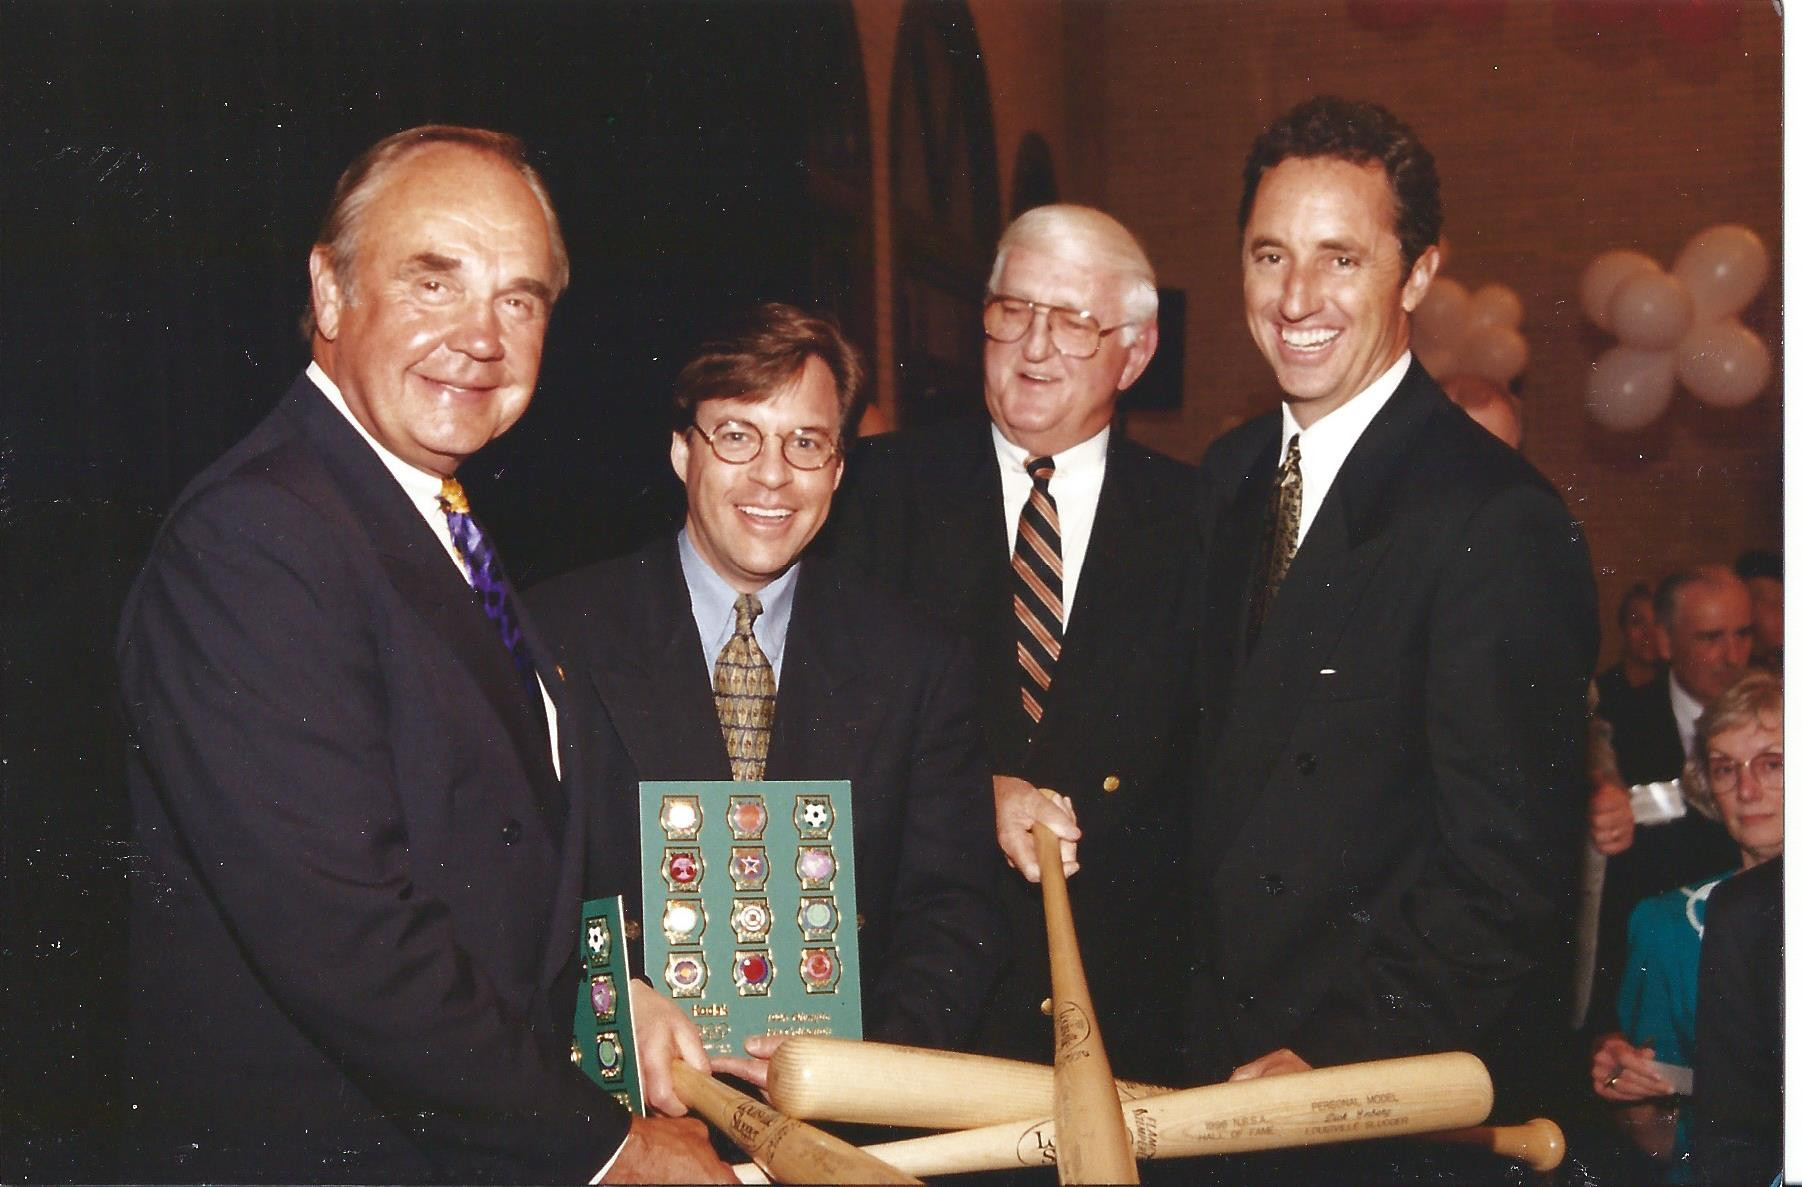 From left:  Dick Enberg, Bob Costas, Dan Jenkins, Rick Reilly at the 1996 NSMA Awards banquet, Salisbury, NC.